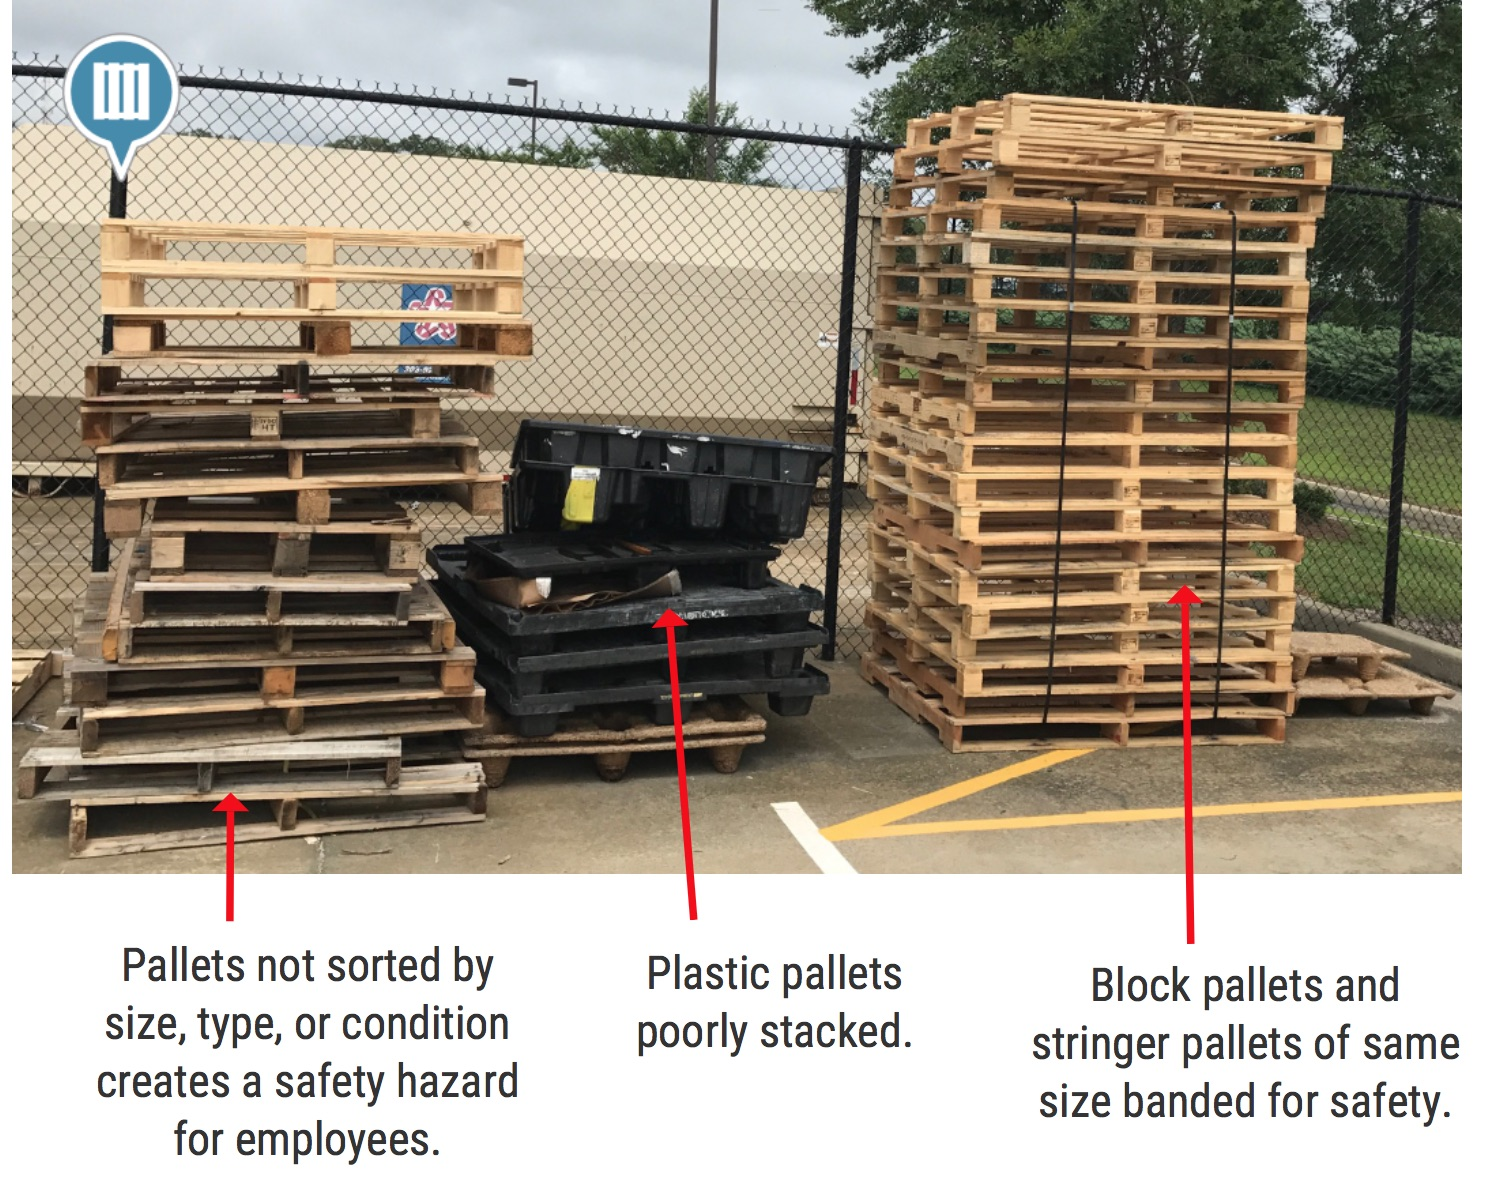 Poorly Stacked Plastic Pallets